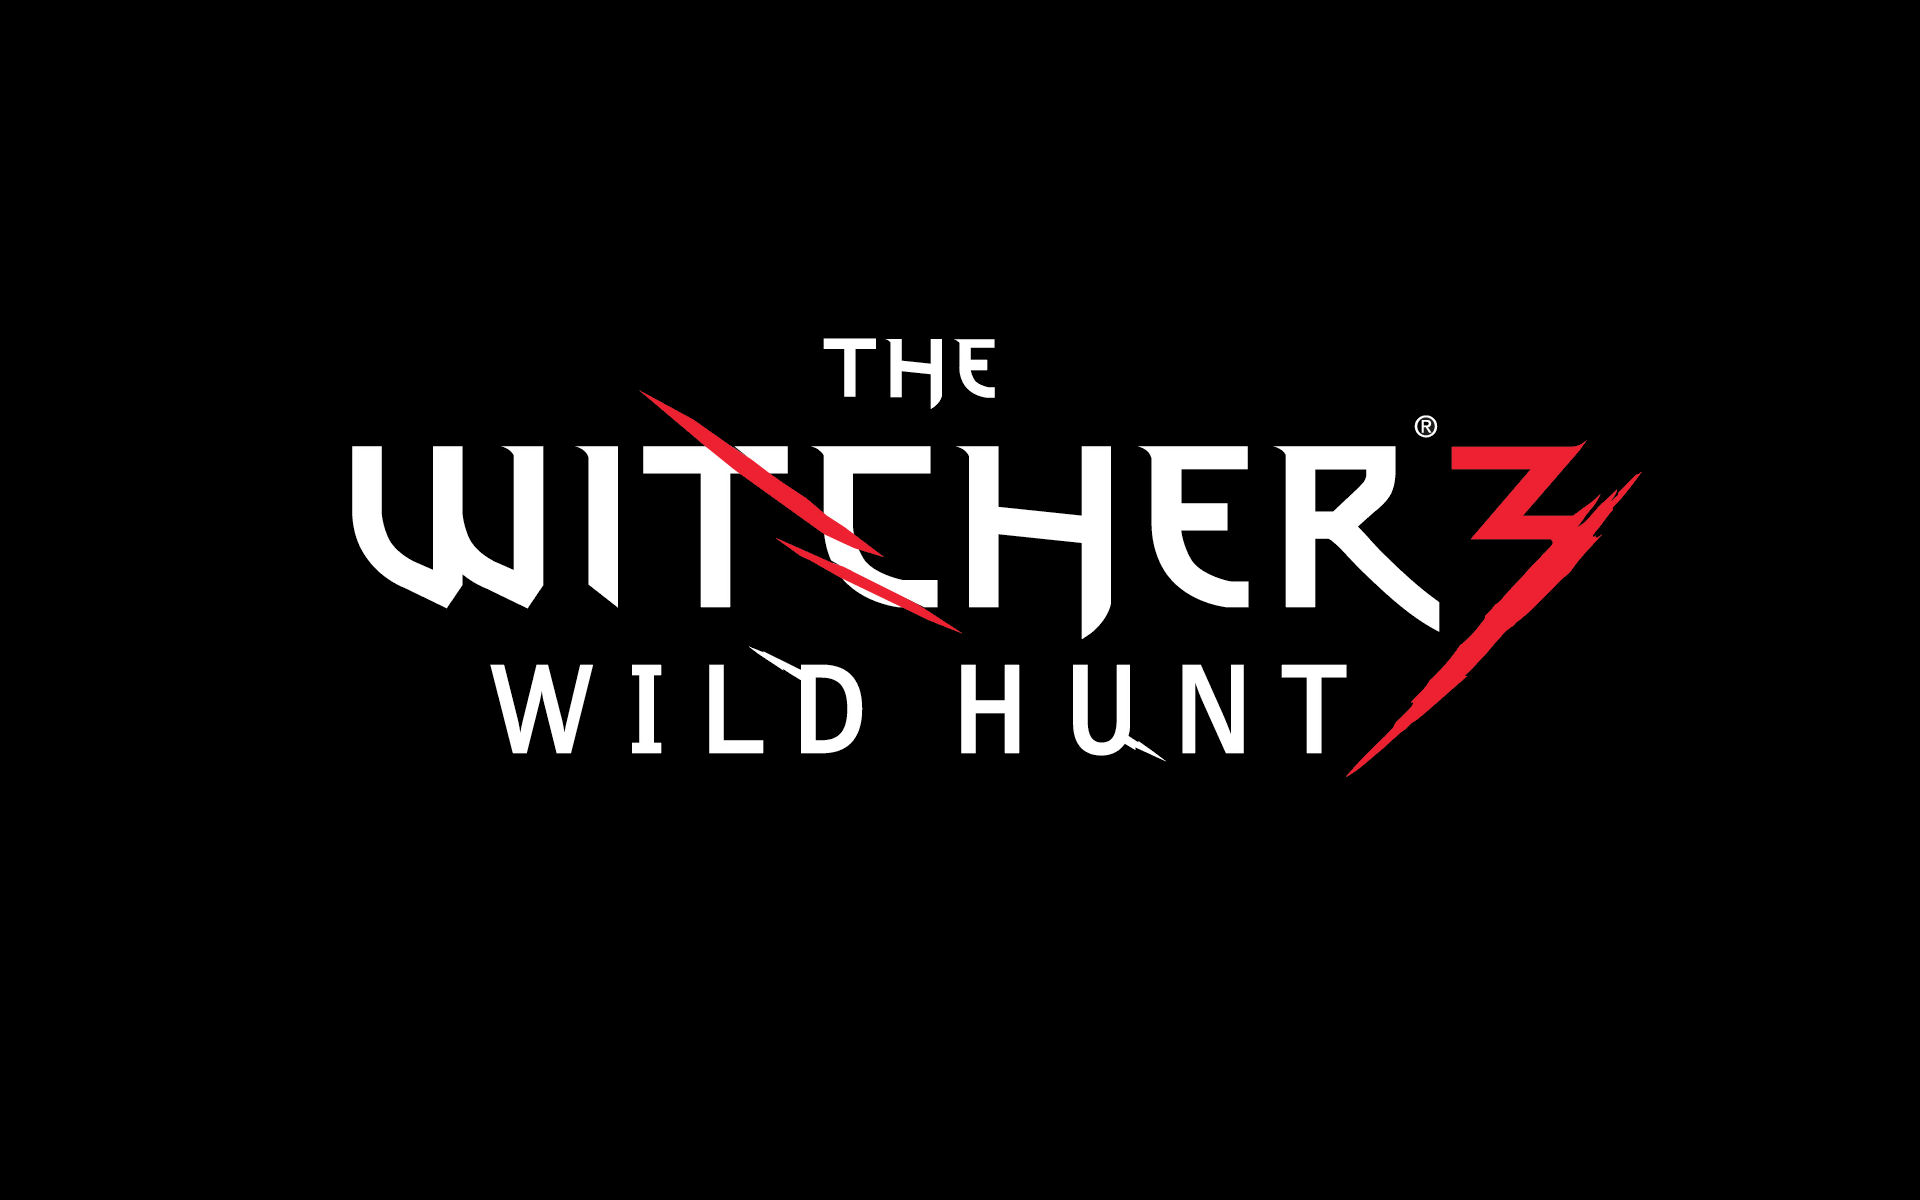 the witcher 3 wild hunt logo wallpaper 44779